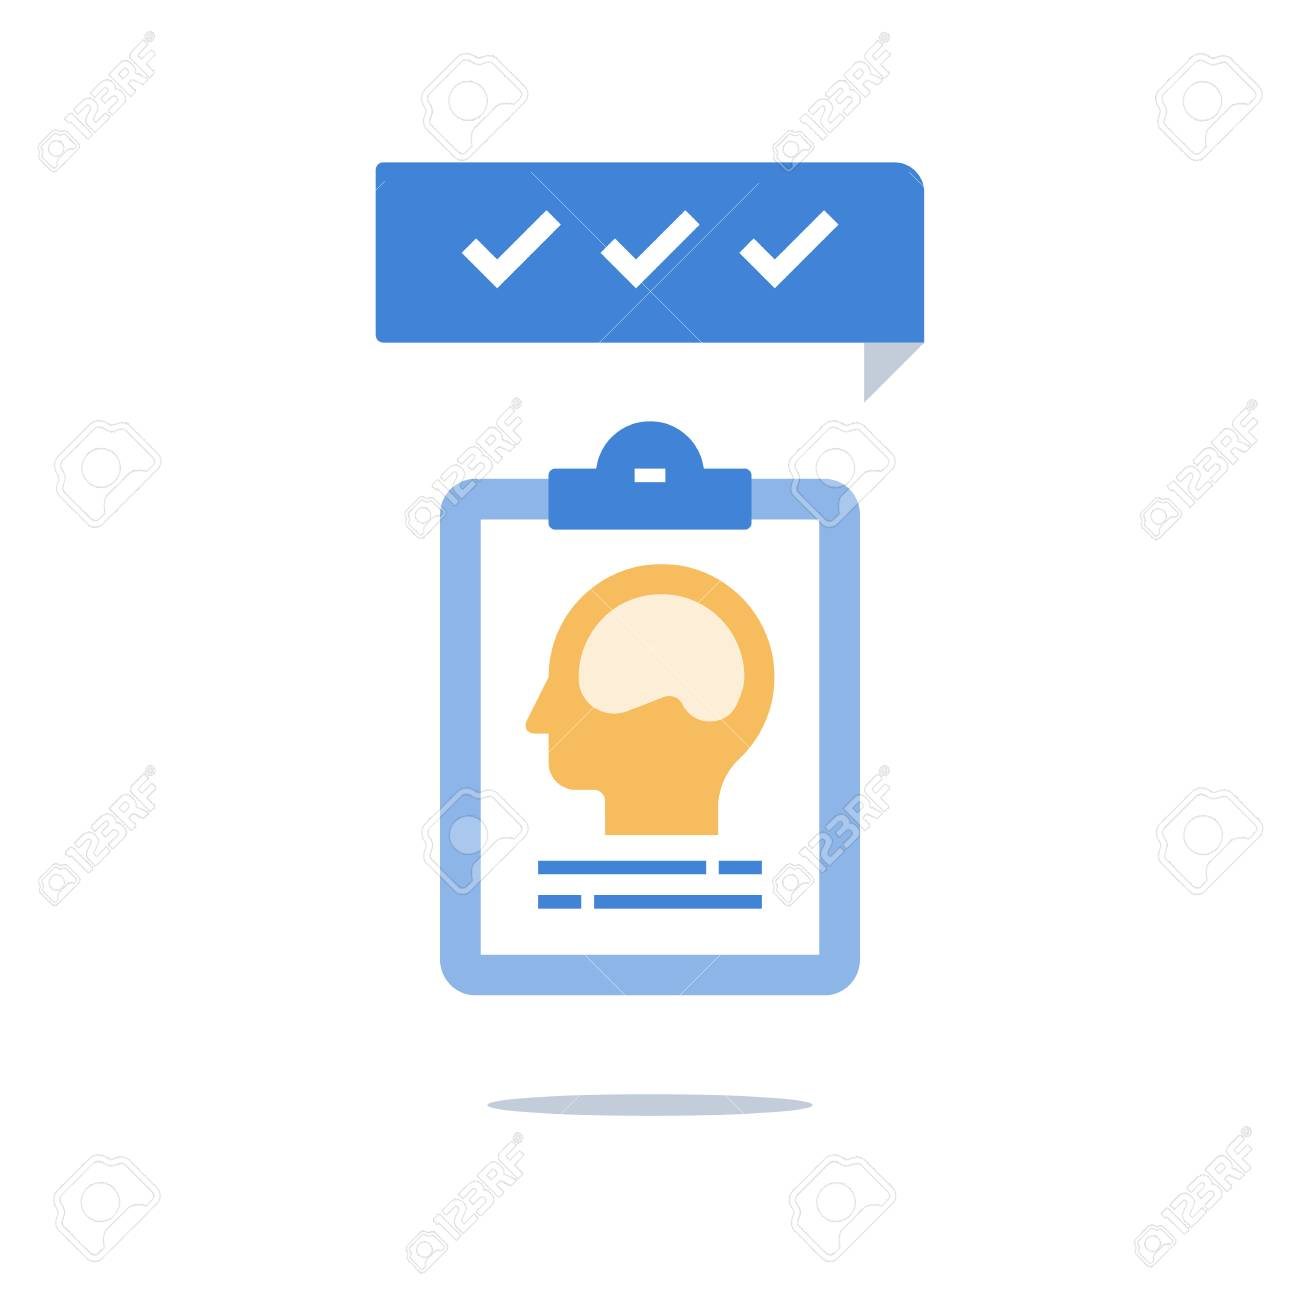 Intelligence evaluation, mental health, brain memory, growth or positive mindset, personal potential, critical or creative thinking, psychiatry or neurology, decision making, vector icon - 108933393